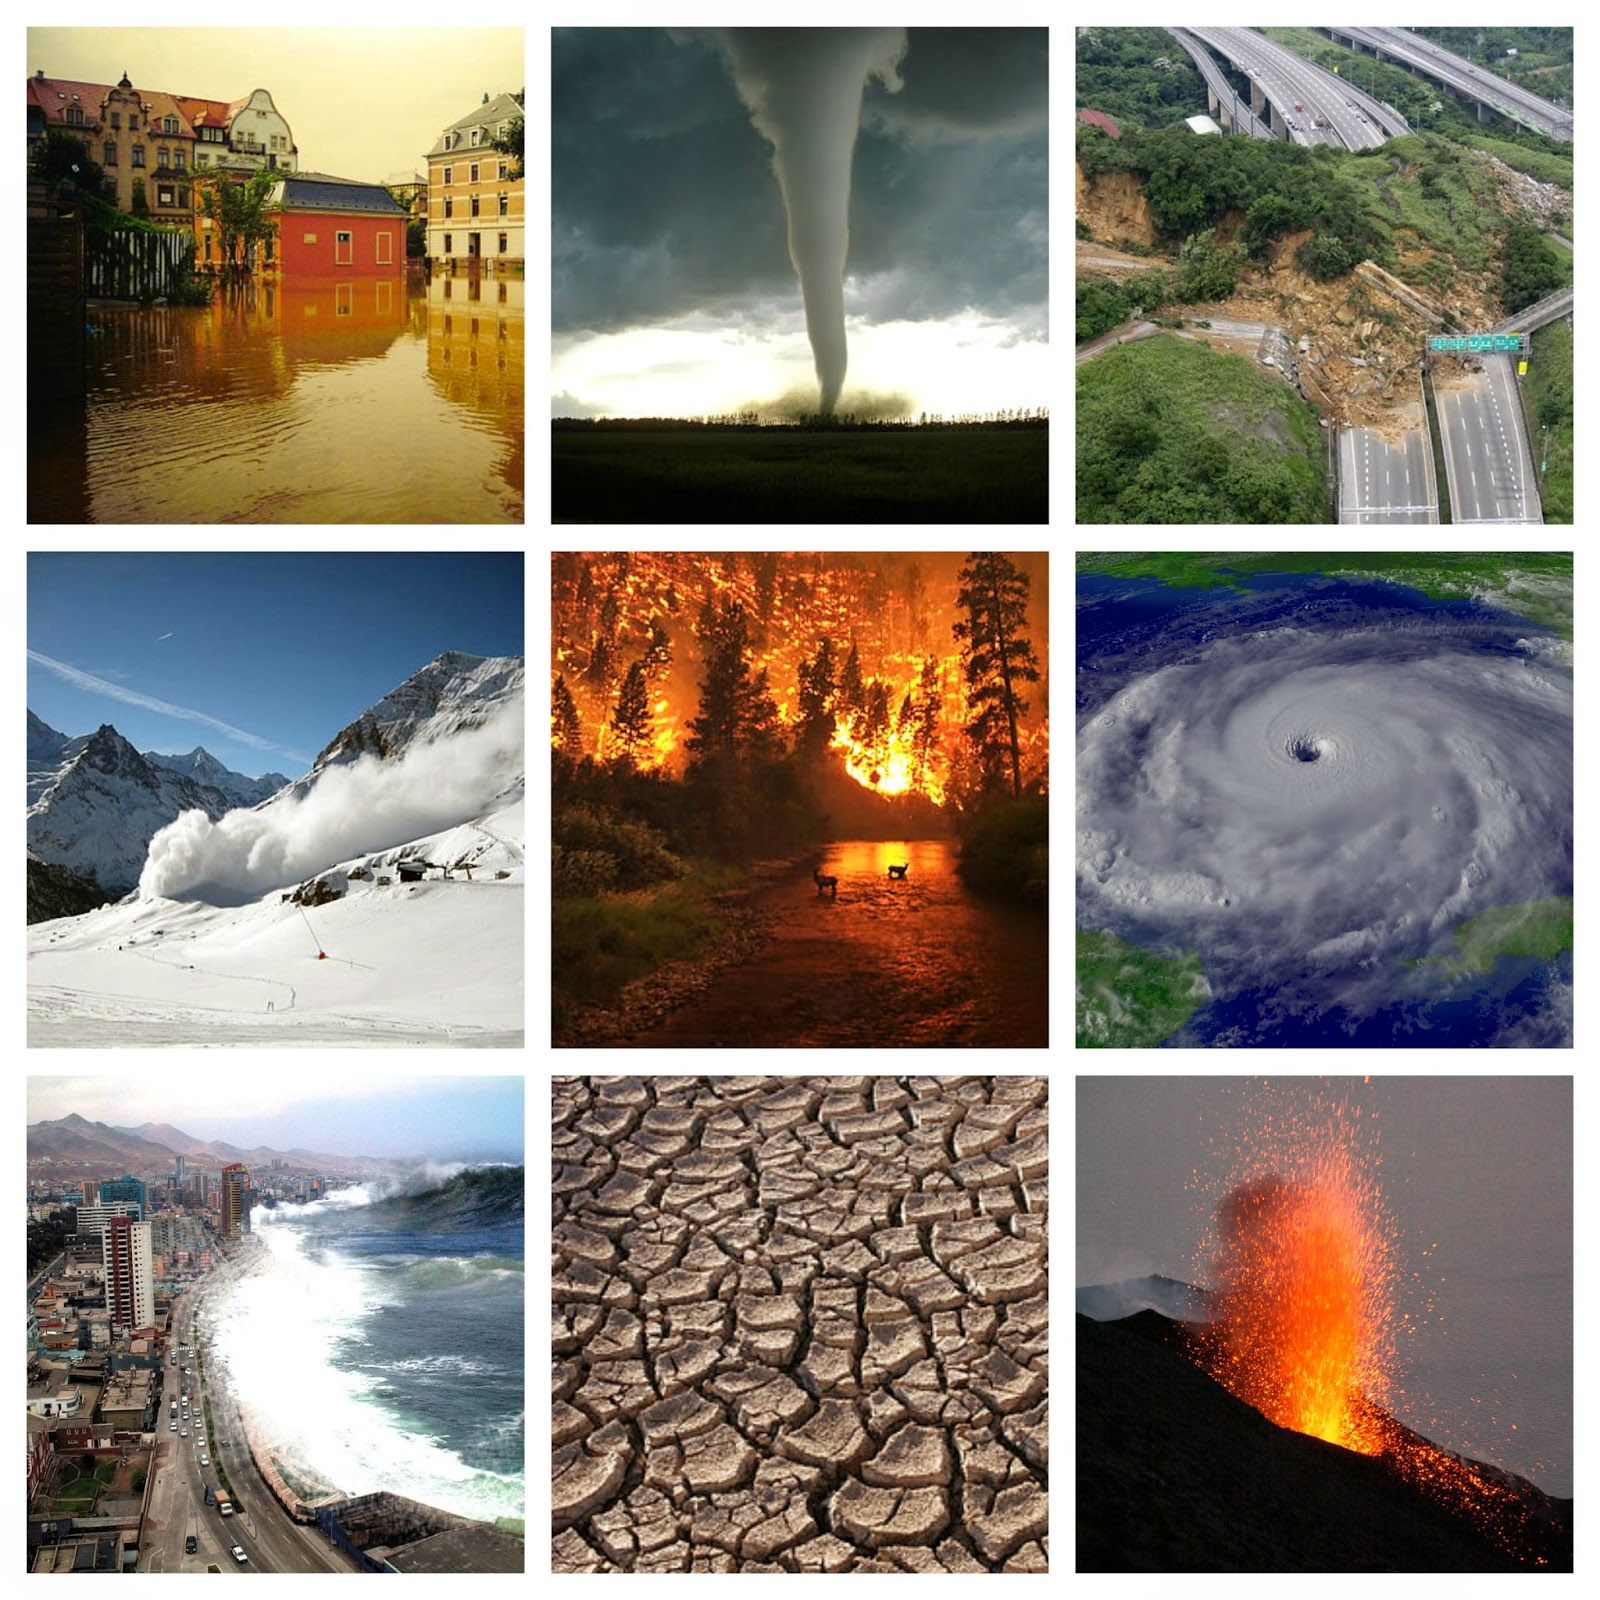 Natural Hazards And Human Society St Cloud State